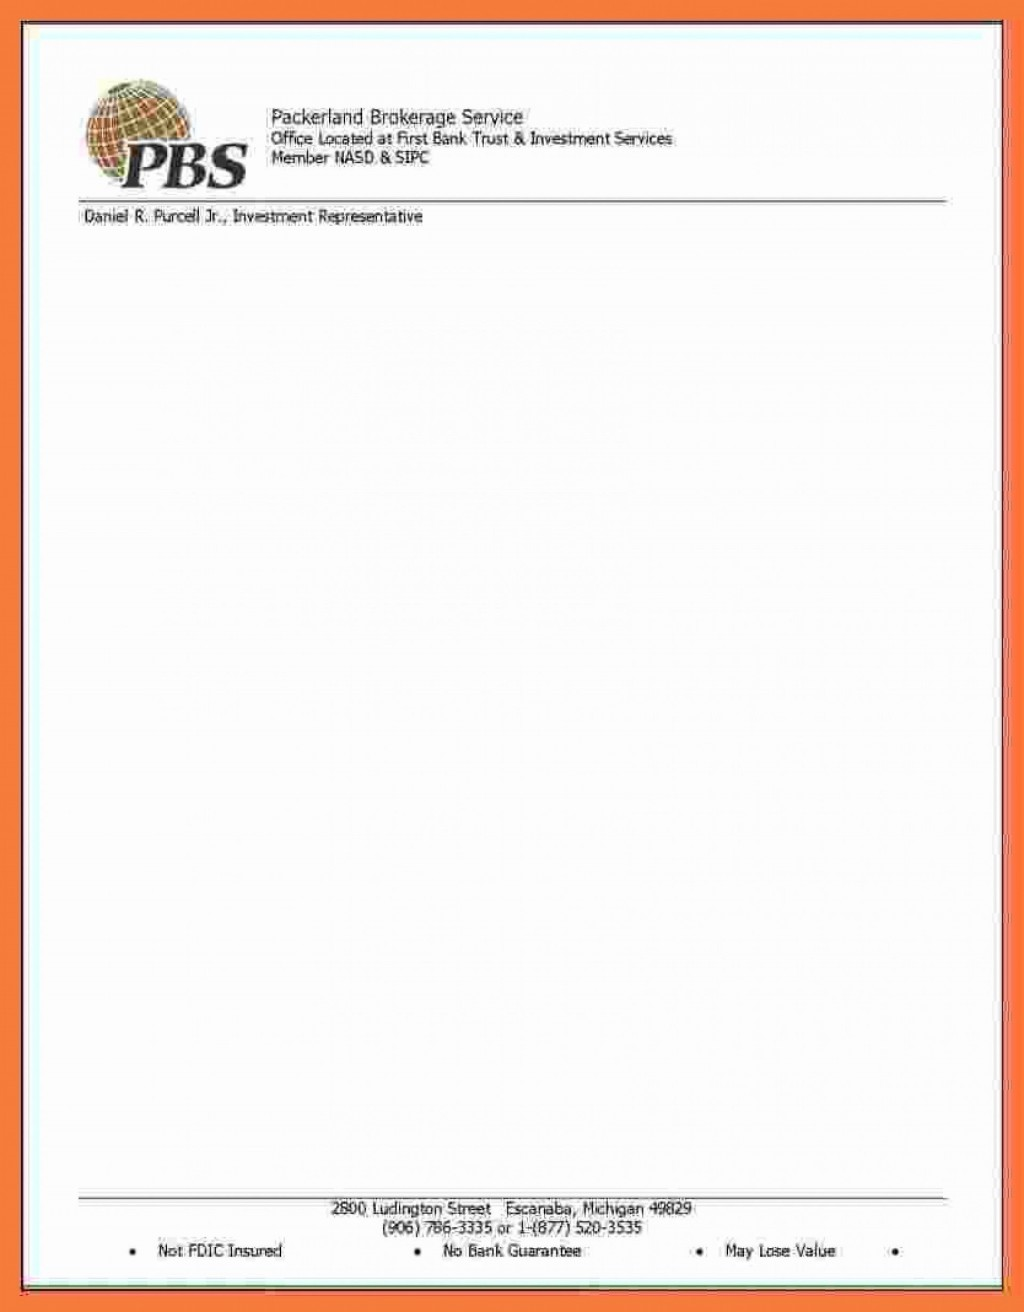 001 Remarkable Letterhead Sample Free Download Inspiration  Construction Company TemplateLarge